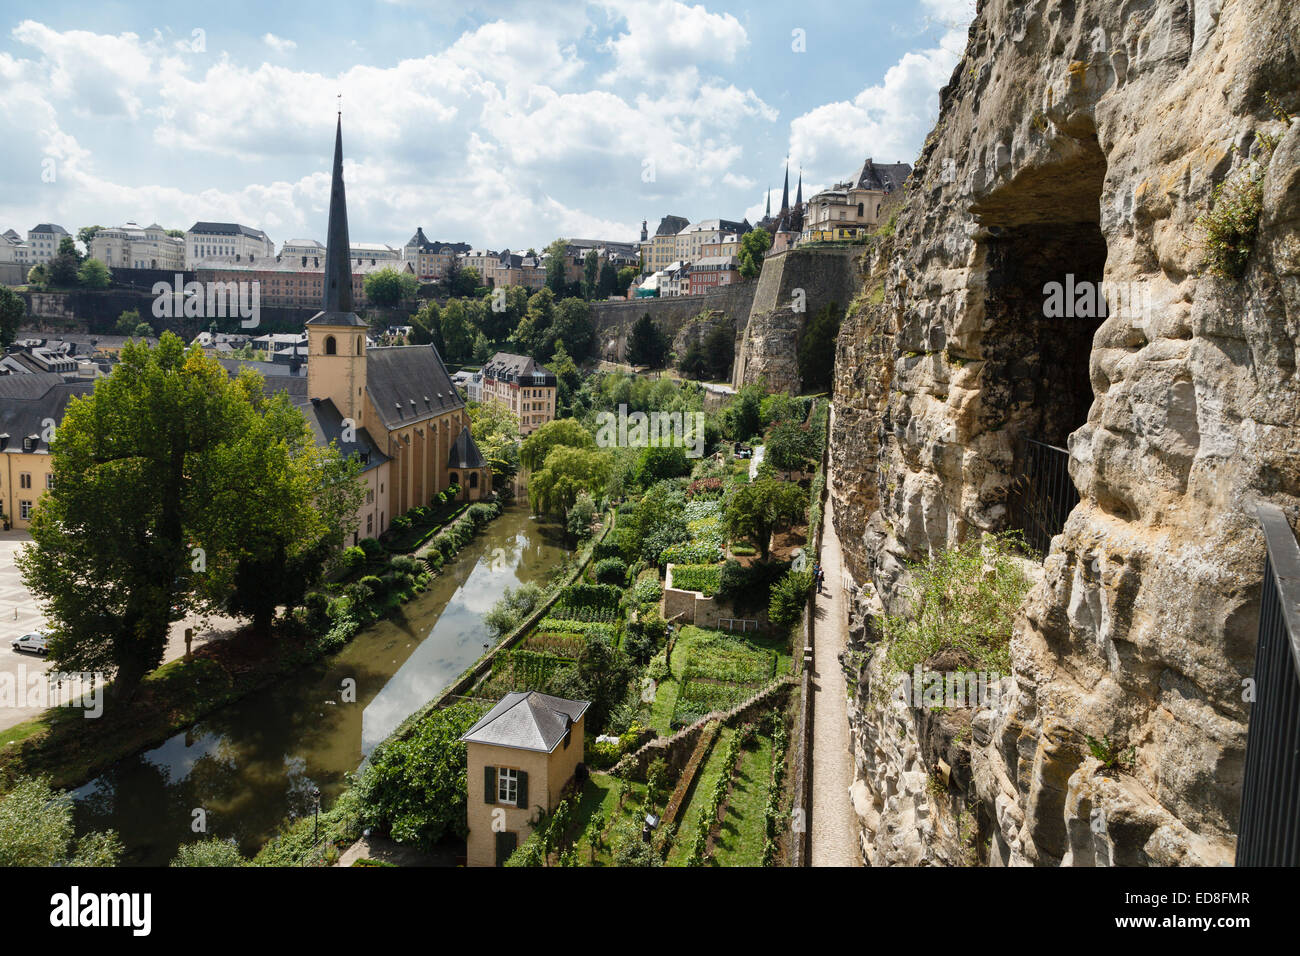 Neumünster Abbey (St John's Church) and the River Alzette from the Bock Casemates, Luxembourg City - Stock Image